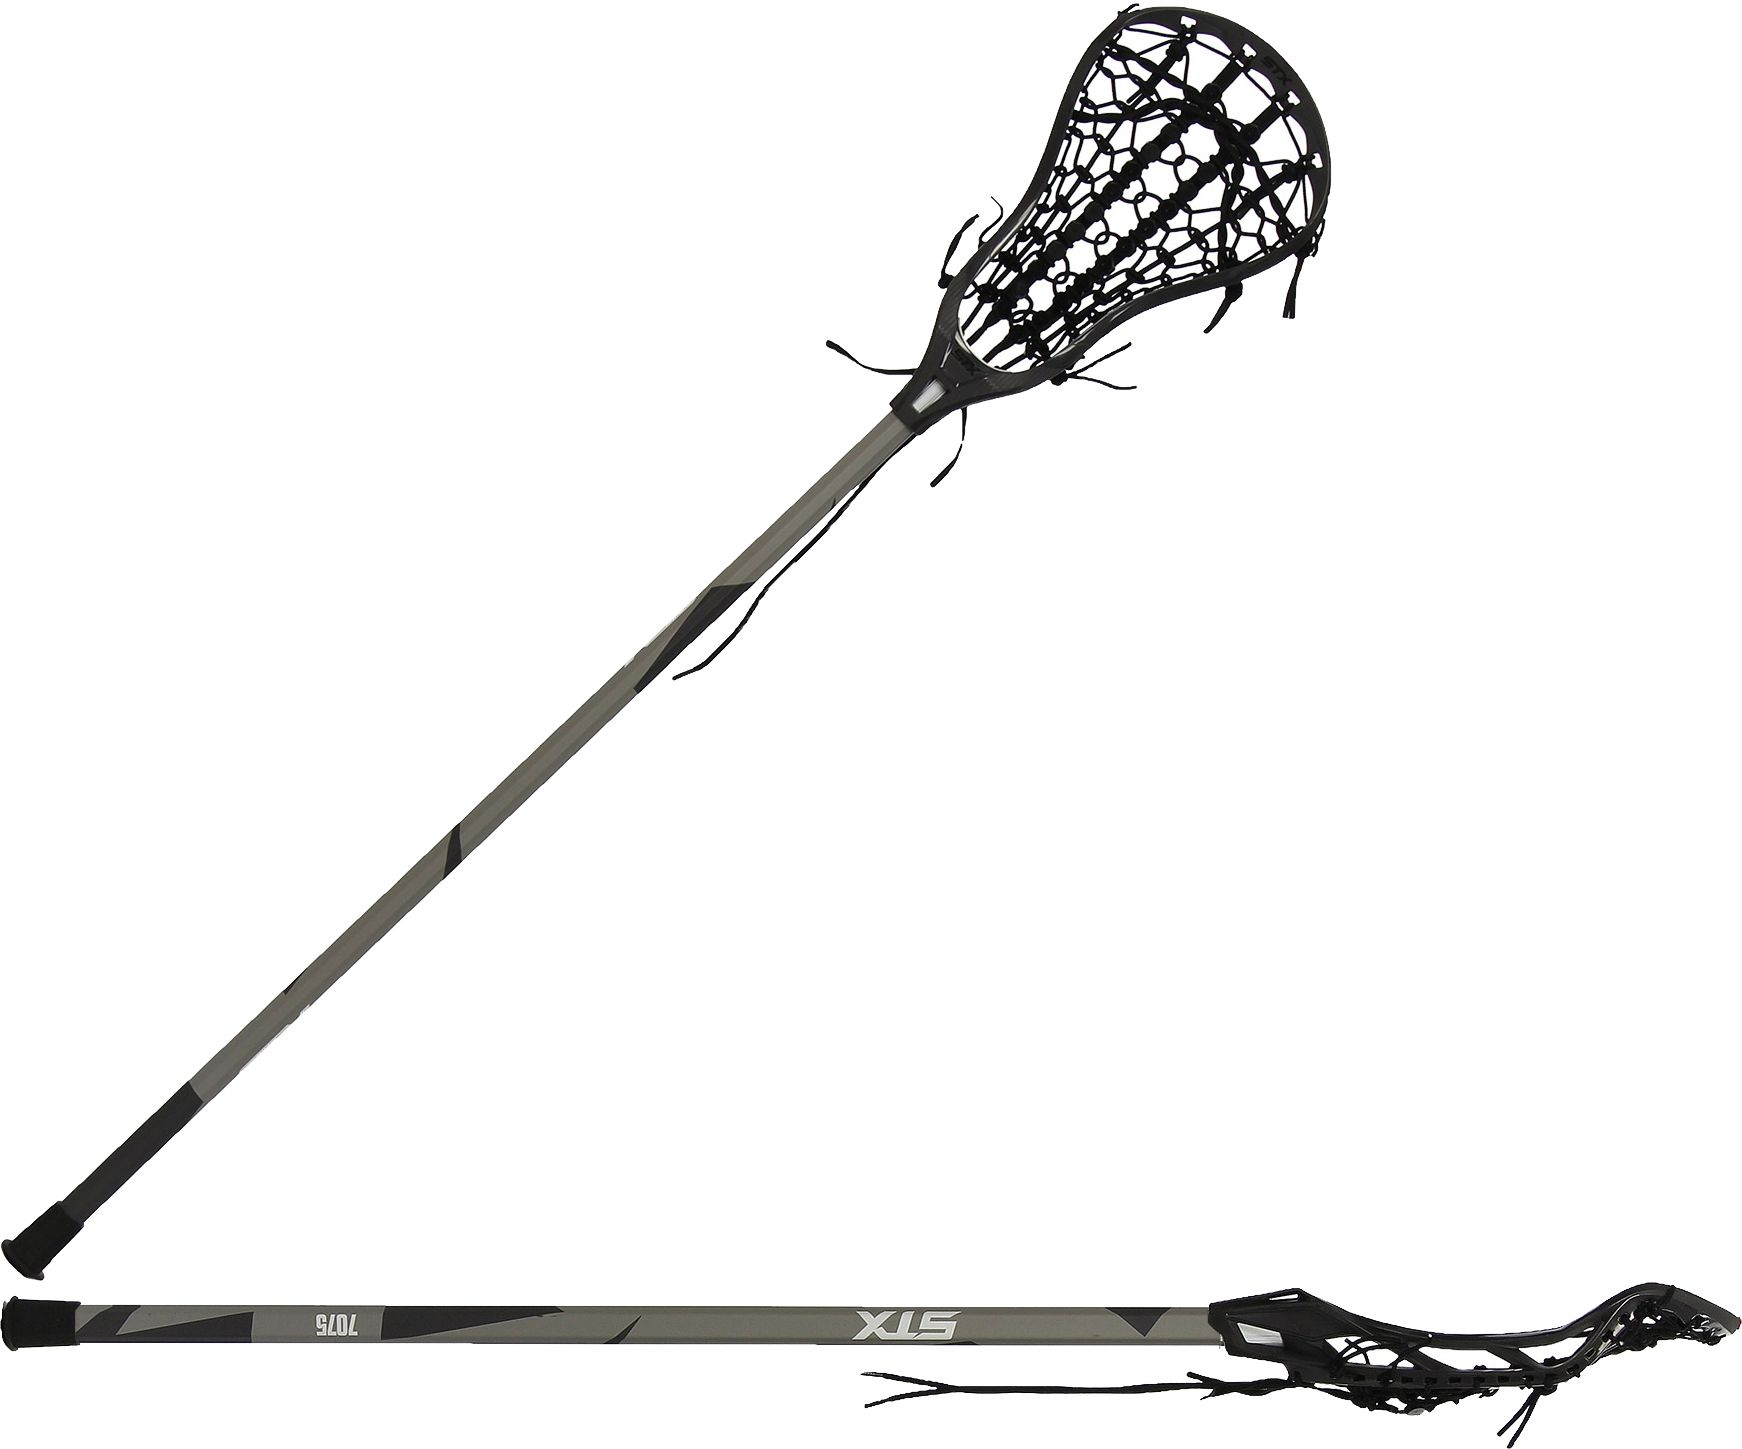 hight resolution of lacrosse stick png hd